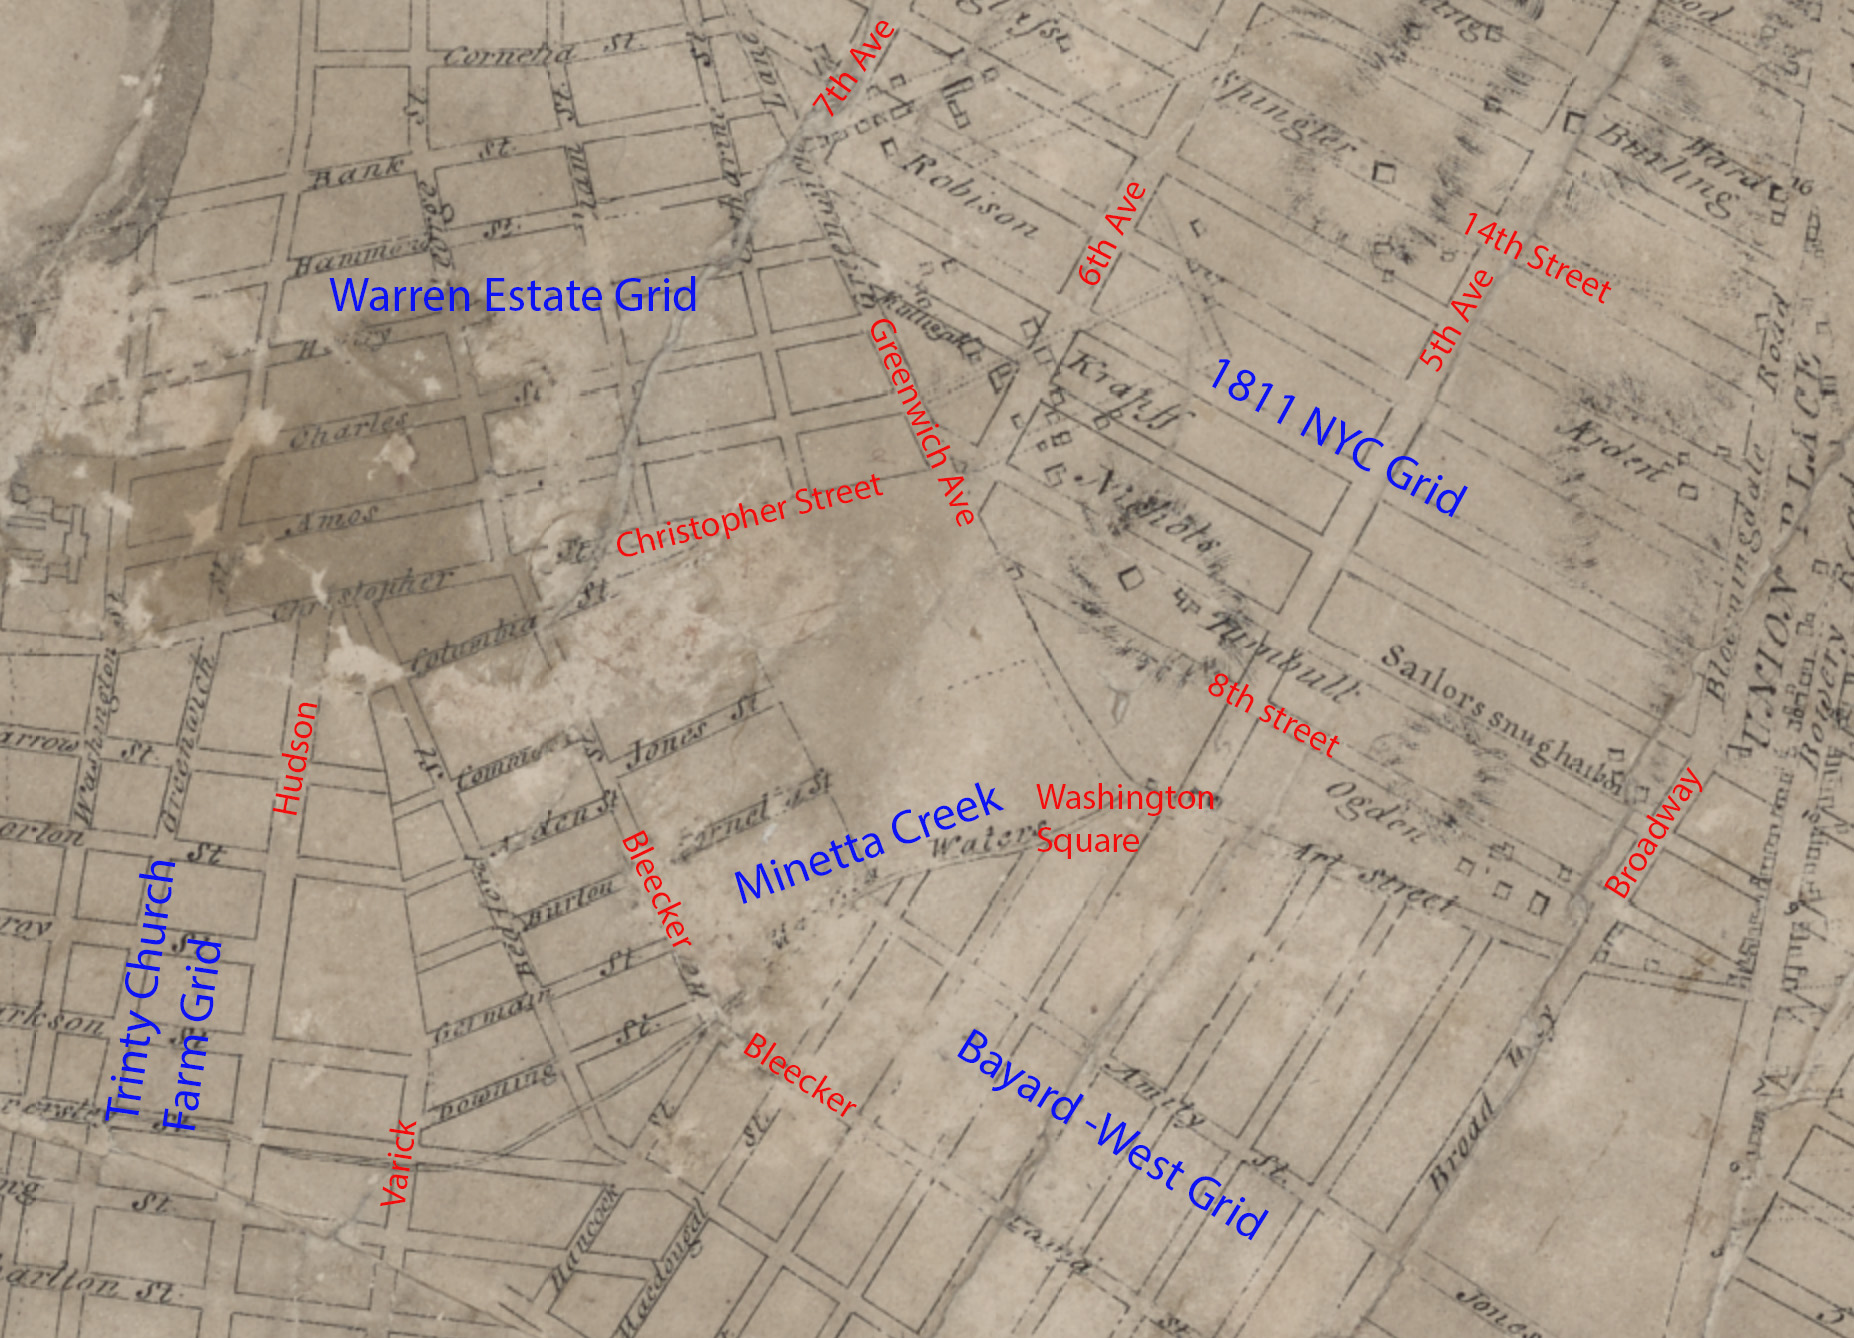 Greenwich Village on the Commission Plan of 1811.    Overlay in blue for the various grids and red for the approx present day streets.